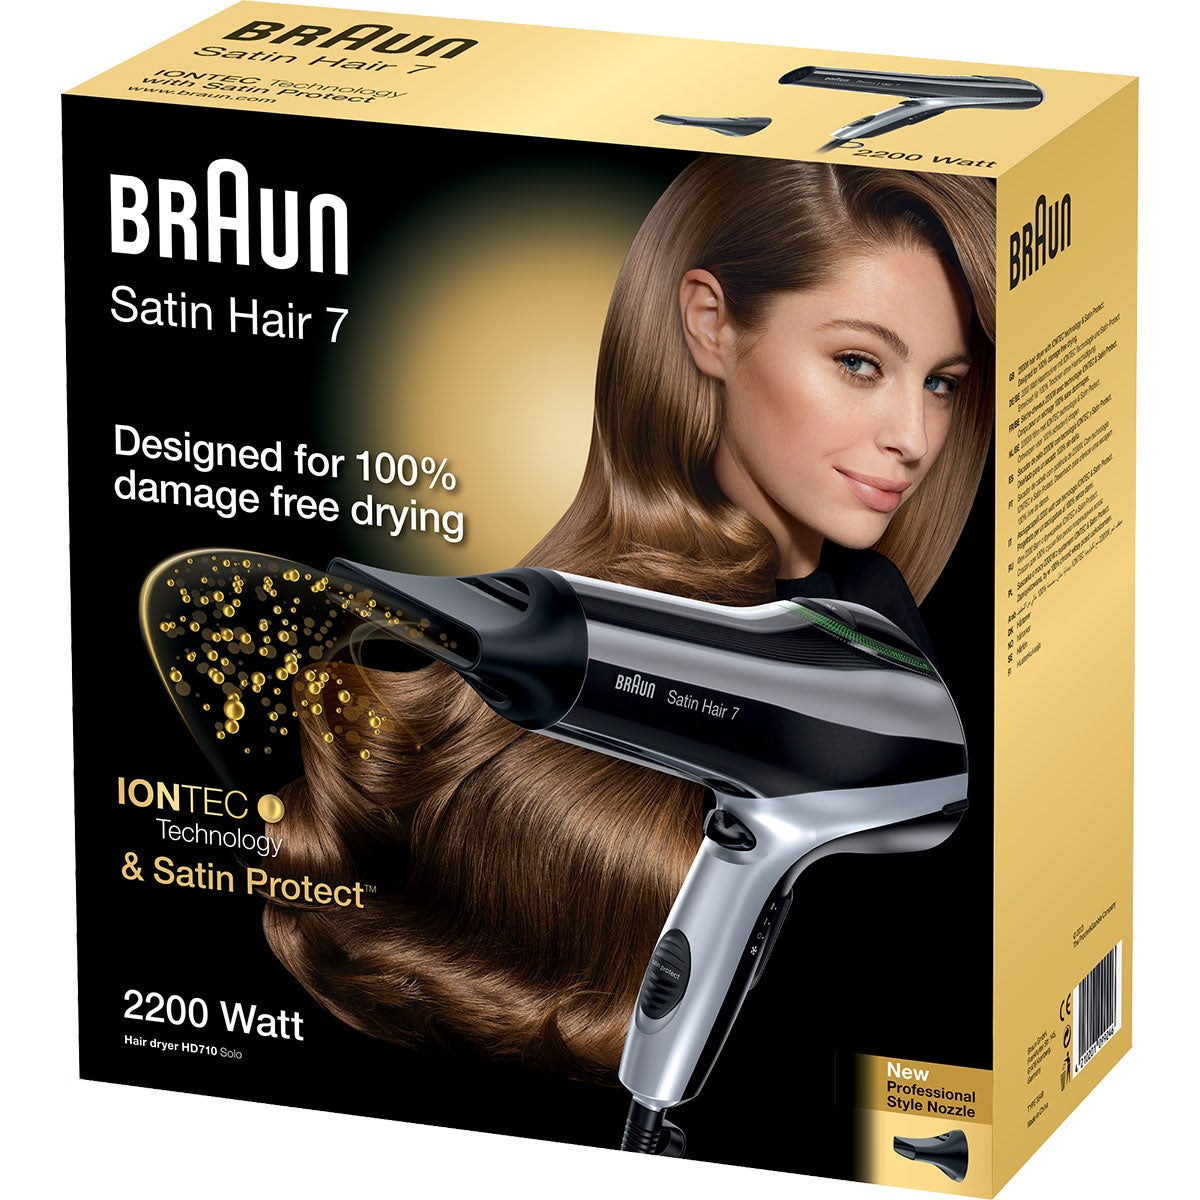 Braun Satin Hair 7 Hairdryer HD710 Solo